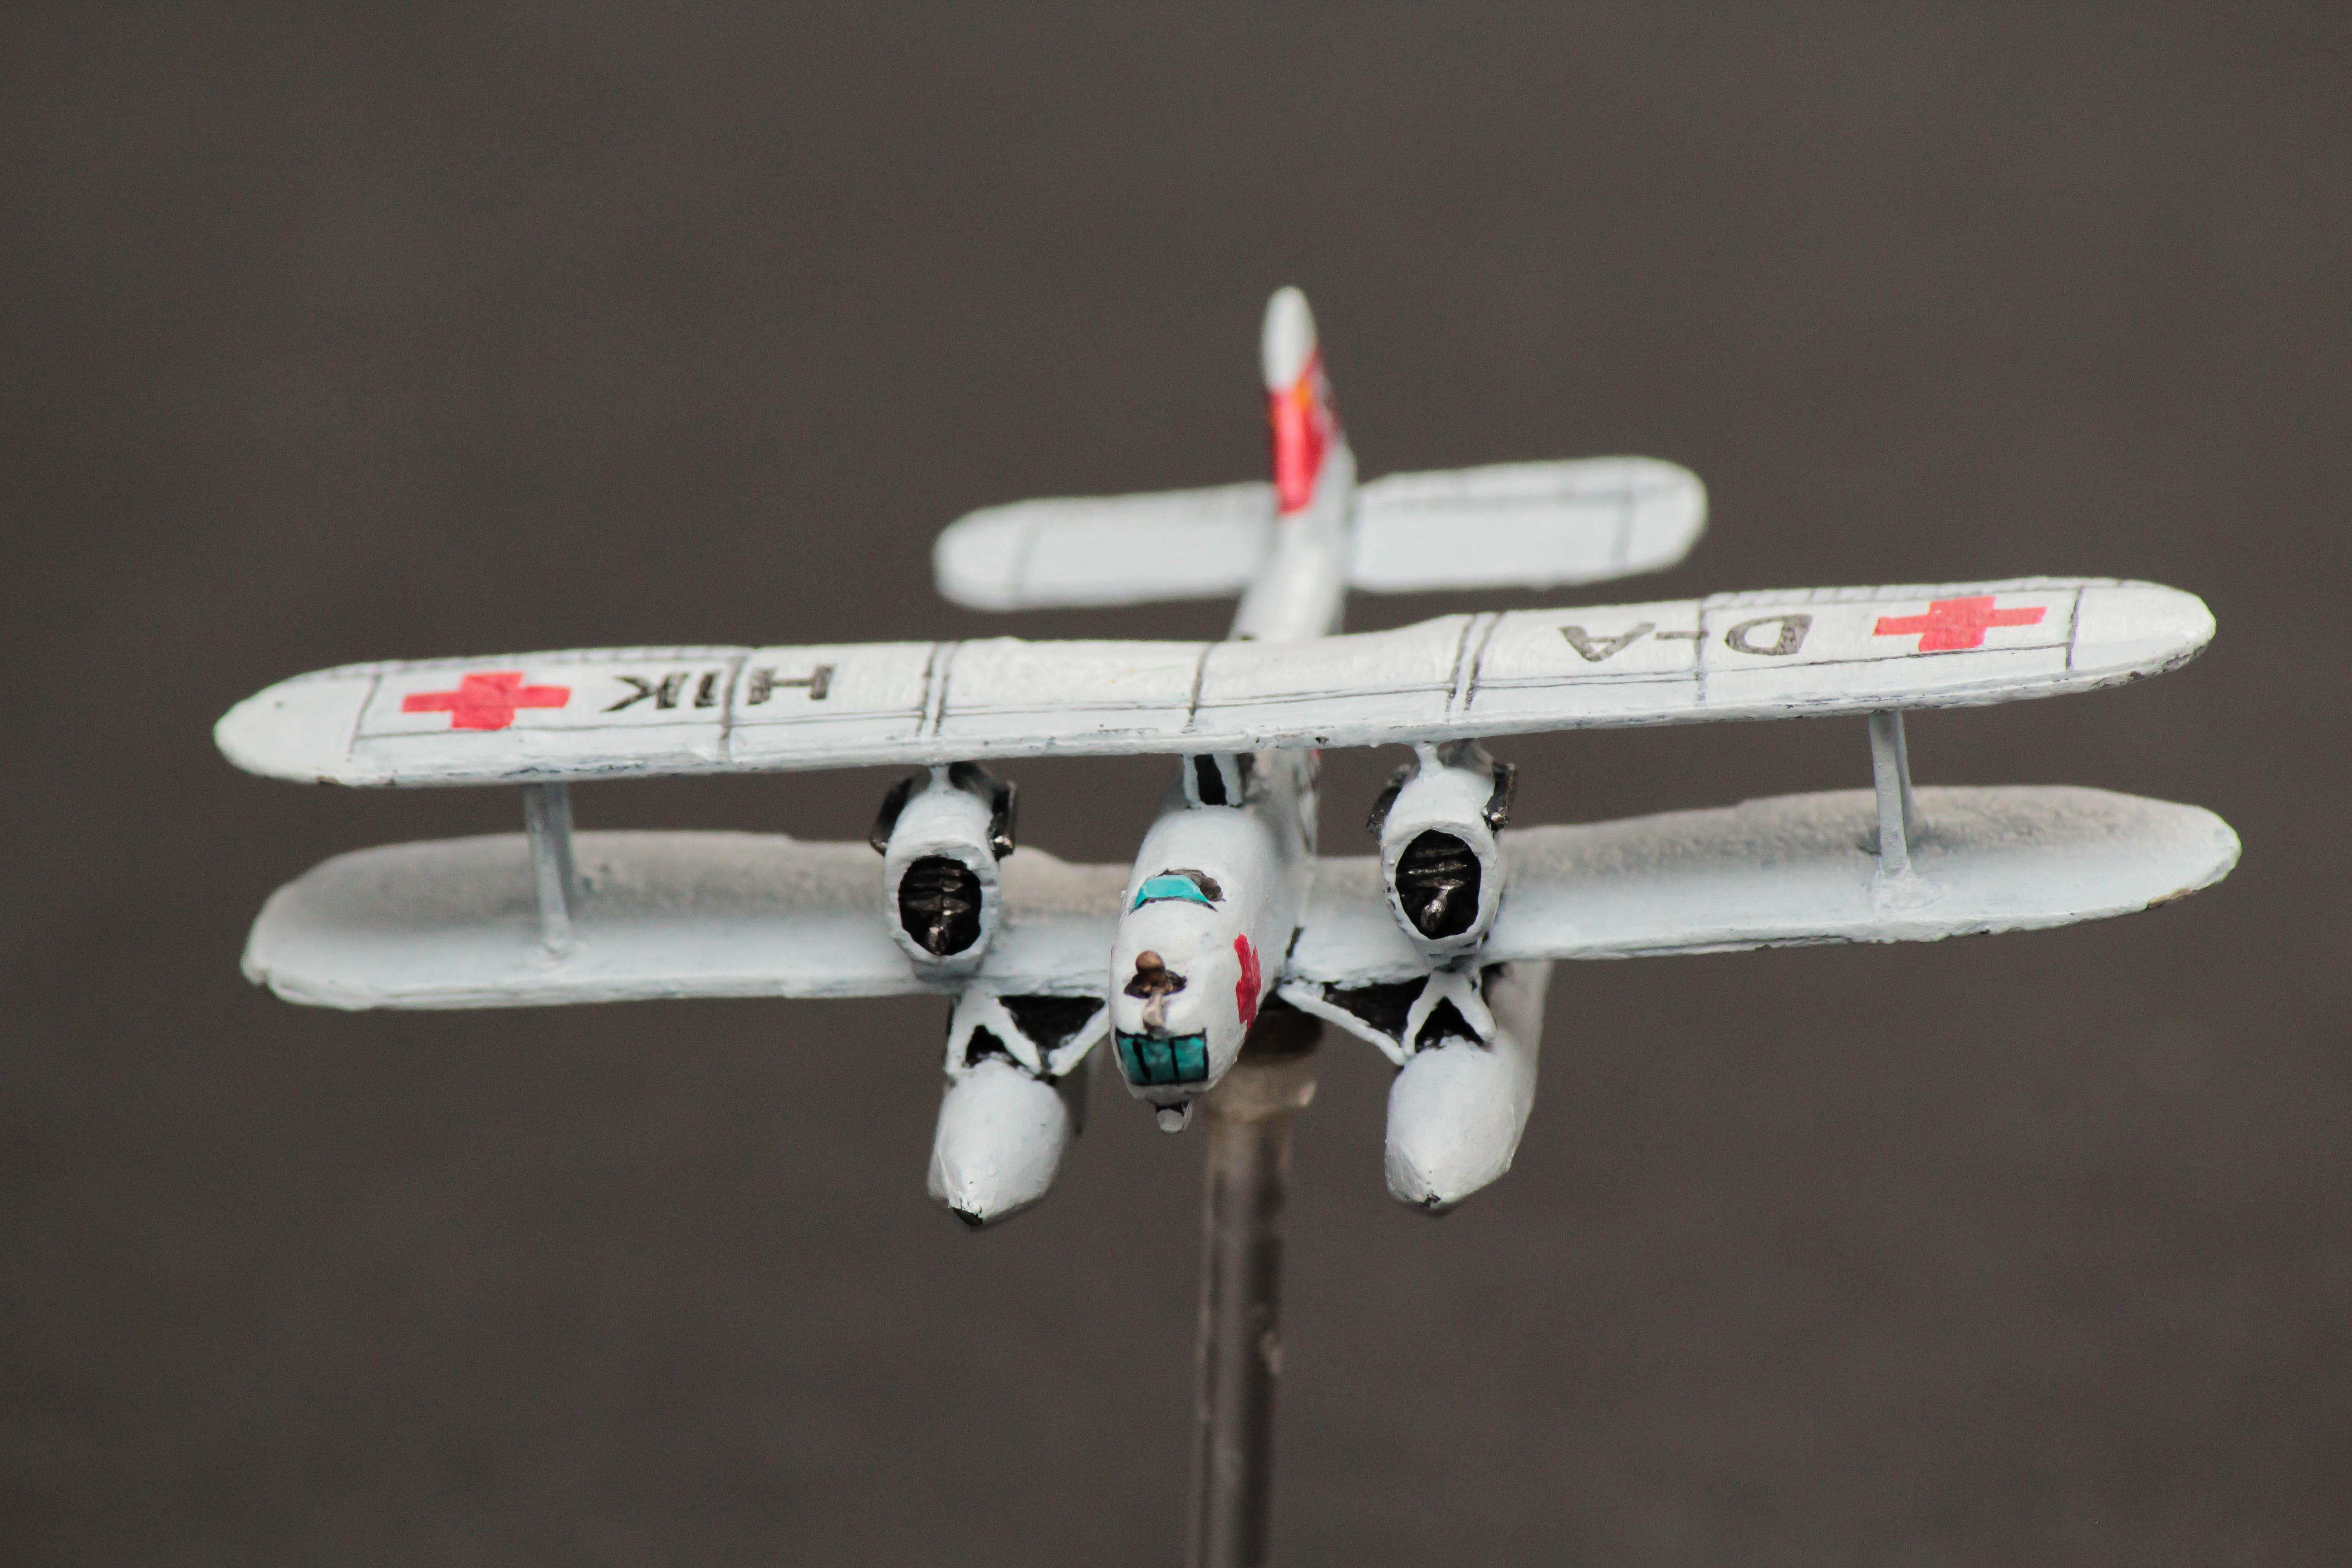 1:300 Scale, 6mm, 6mm Scale, Air Combat, Finland, French, Germans, Imperial Japan, Italian, Luftwaffe, Raf, Red Cross, Republic Of China, Soviet, Usaaf, World War 2